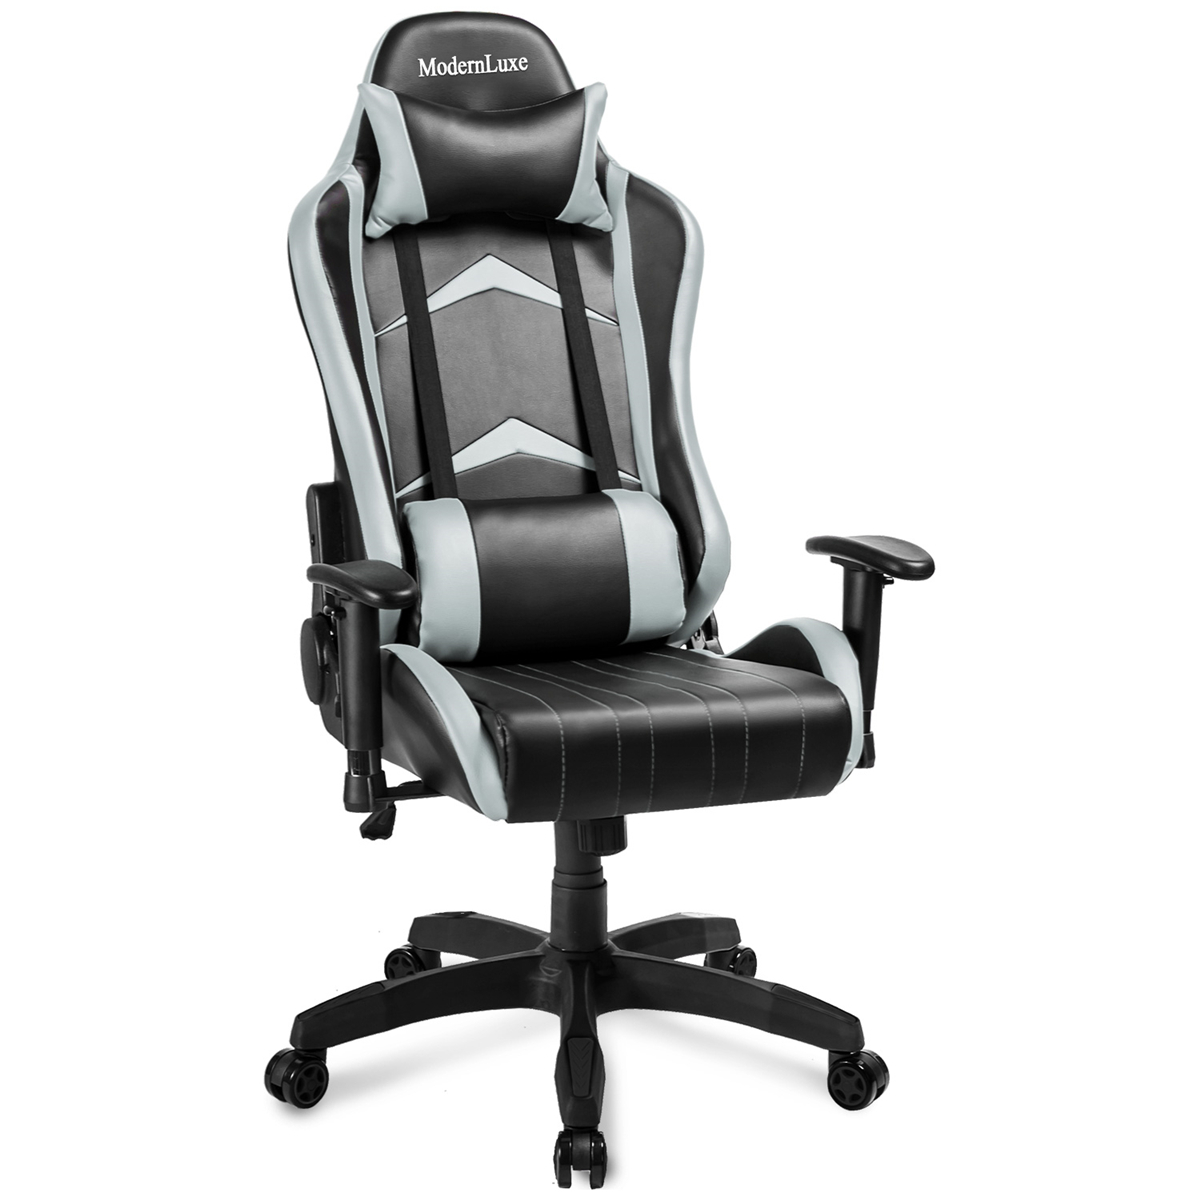 ModernLuxe Office Chair Racing Gaming Chair PU Leather